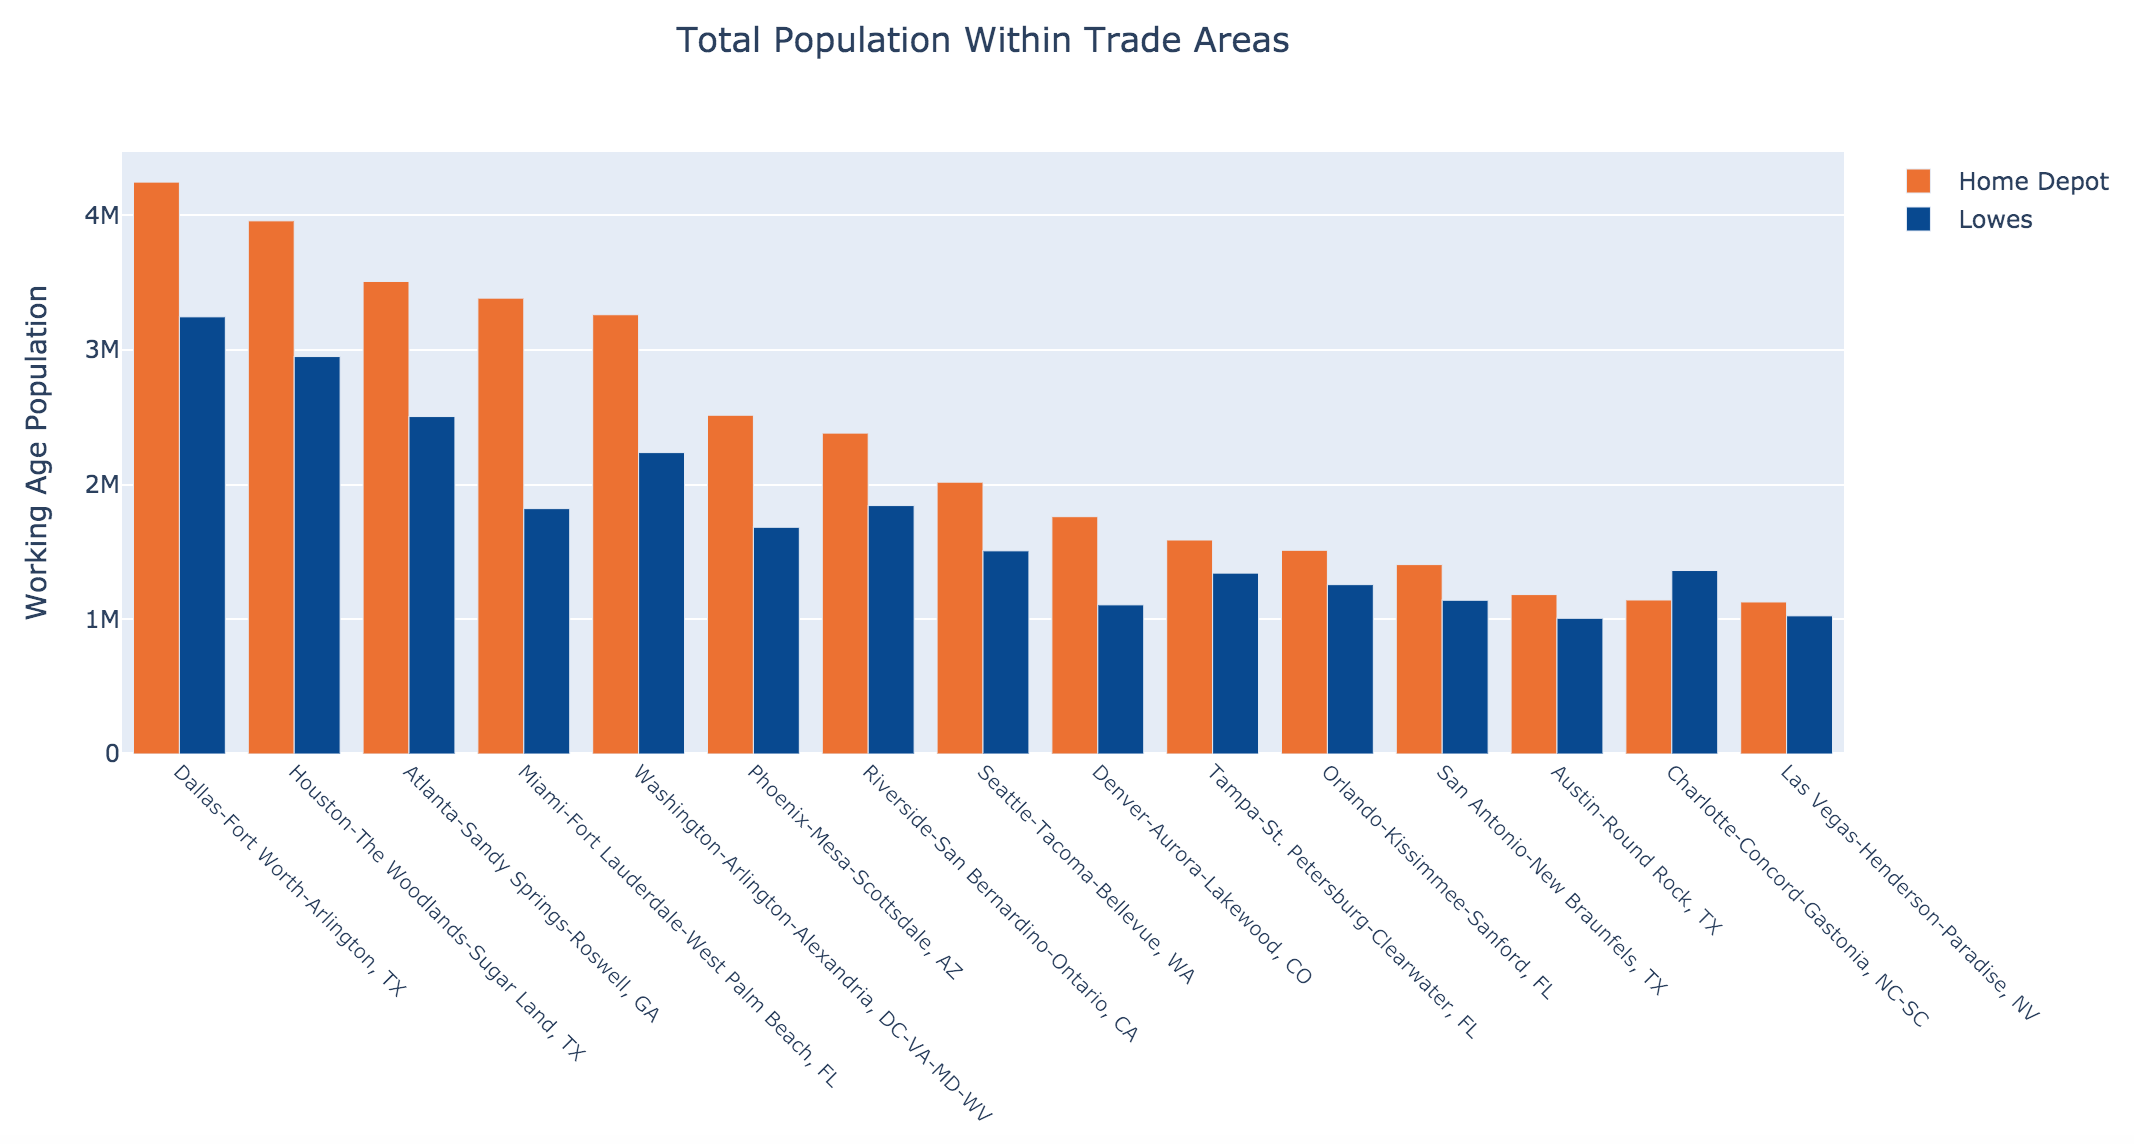 Total Population Within Trade Areas